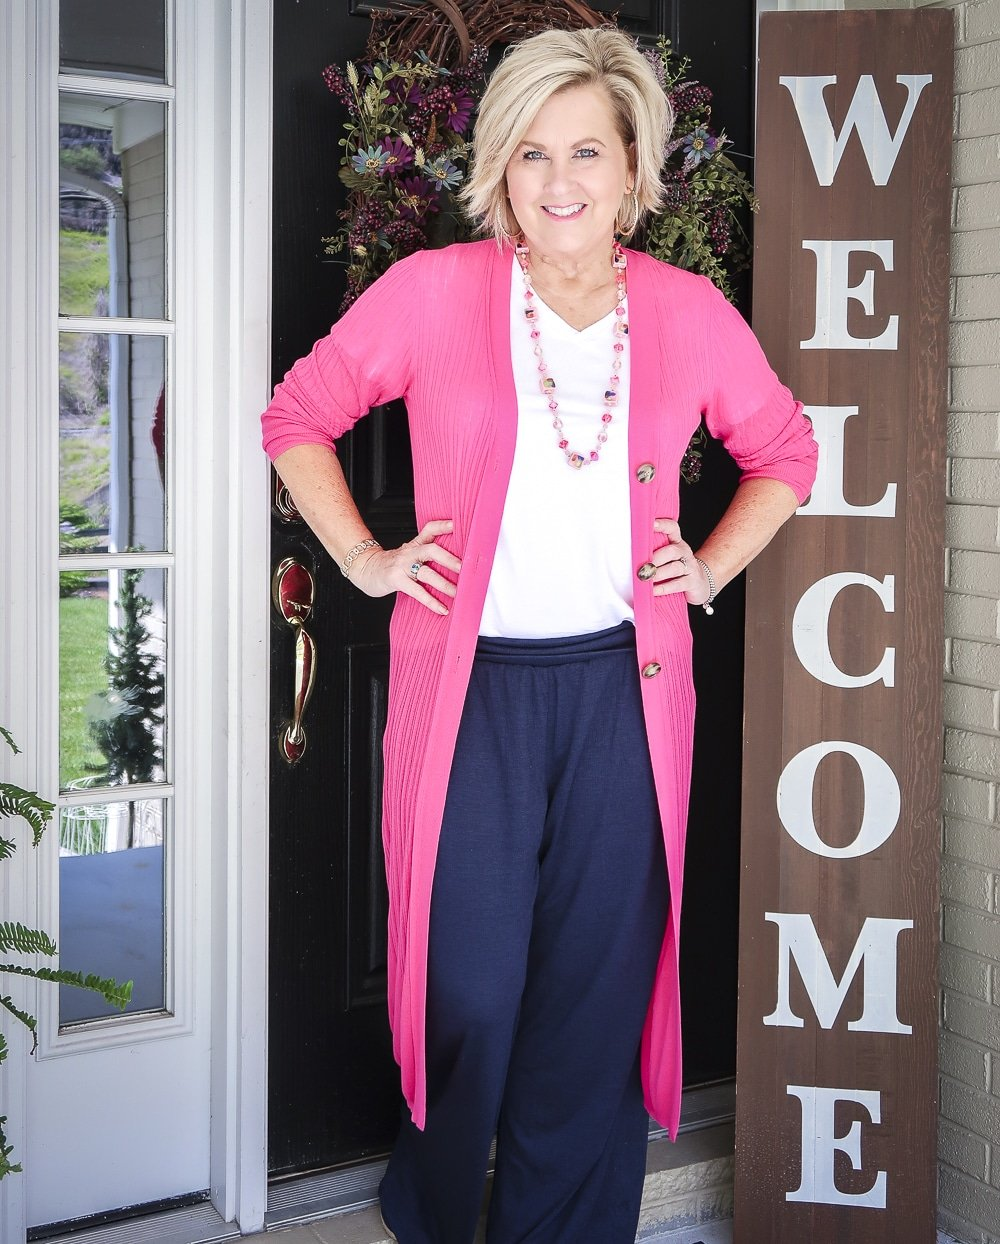 Fashion Blogger 50 Is Not Old wearing a hot pink duster cardigan with a white v-neck t-shirt